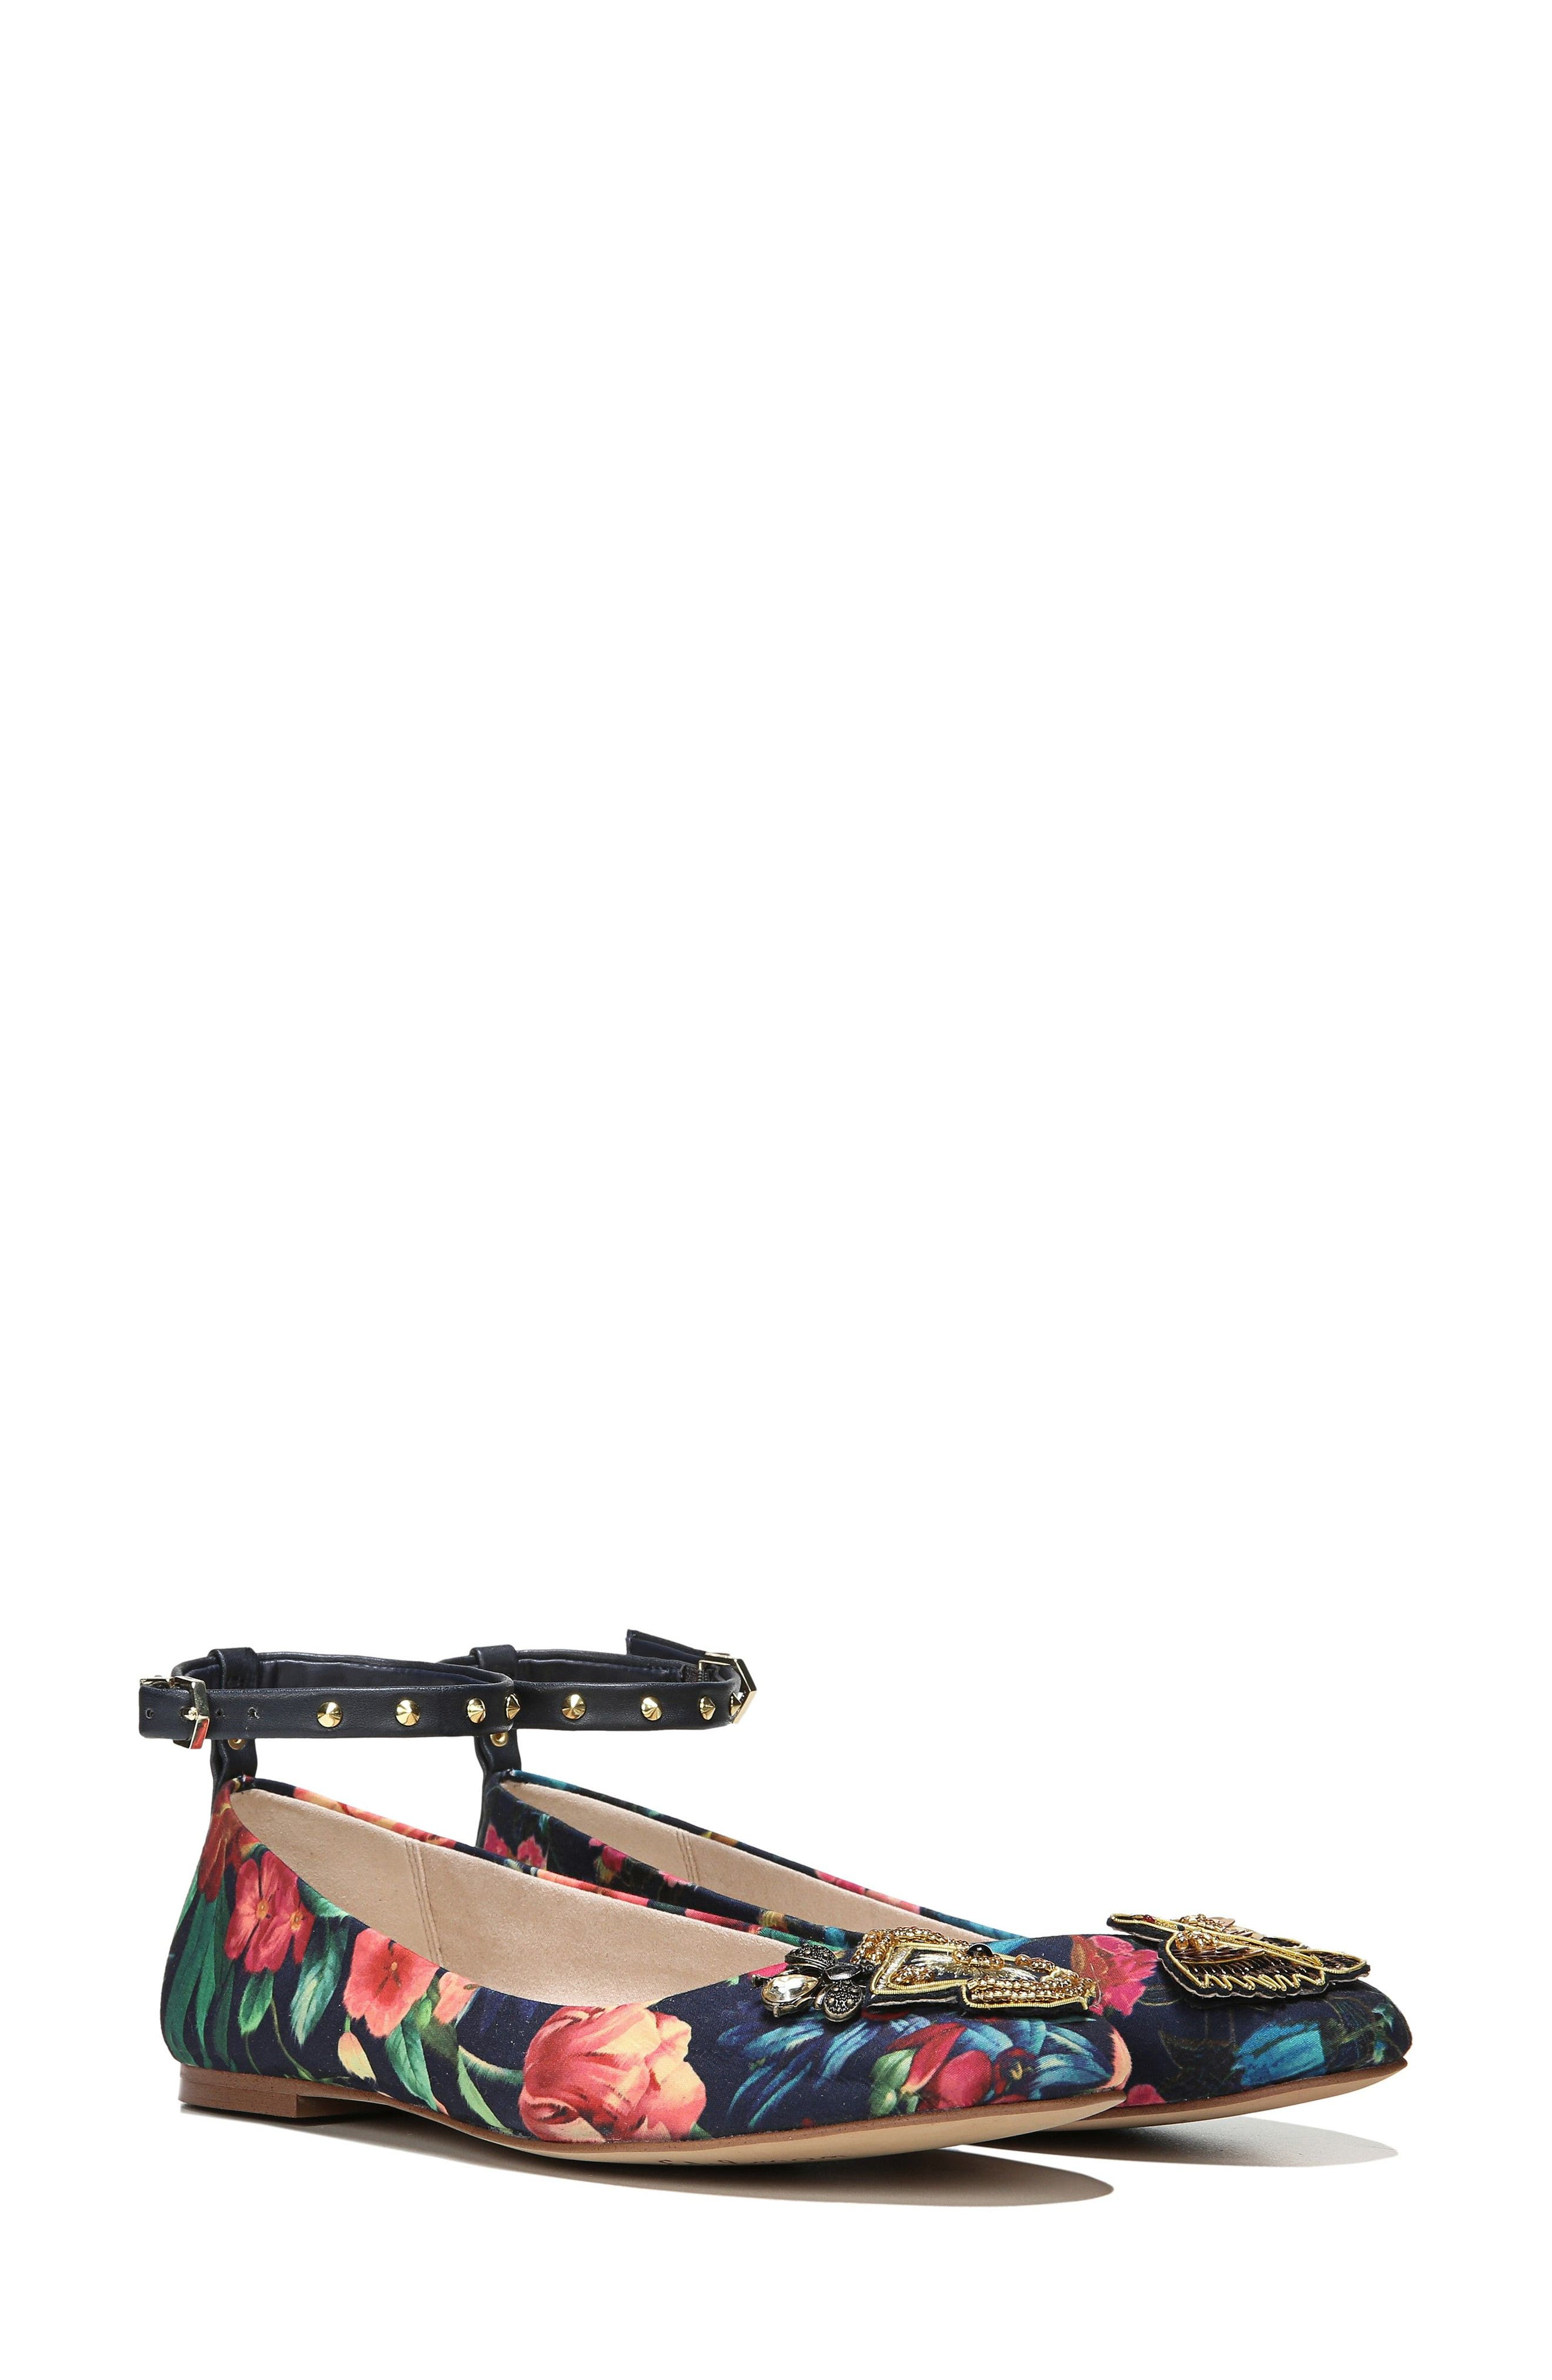 Ferrera Embellished Ankle Strap Flat,                             Alternate thumbnail 2, color,                             Navy Floral Fabric